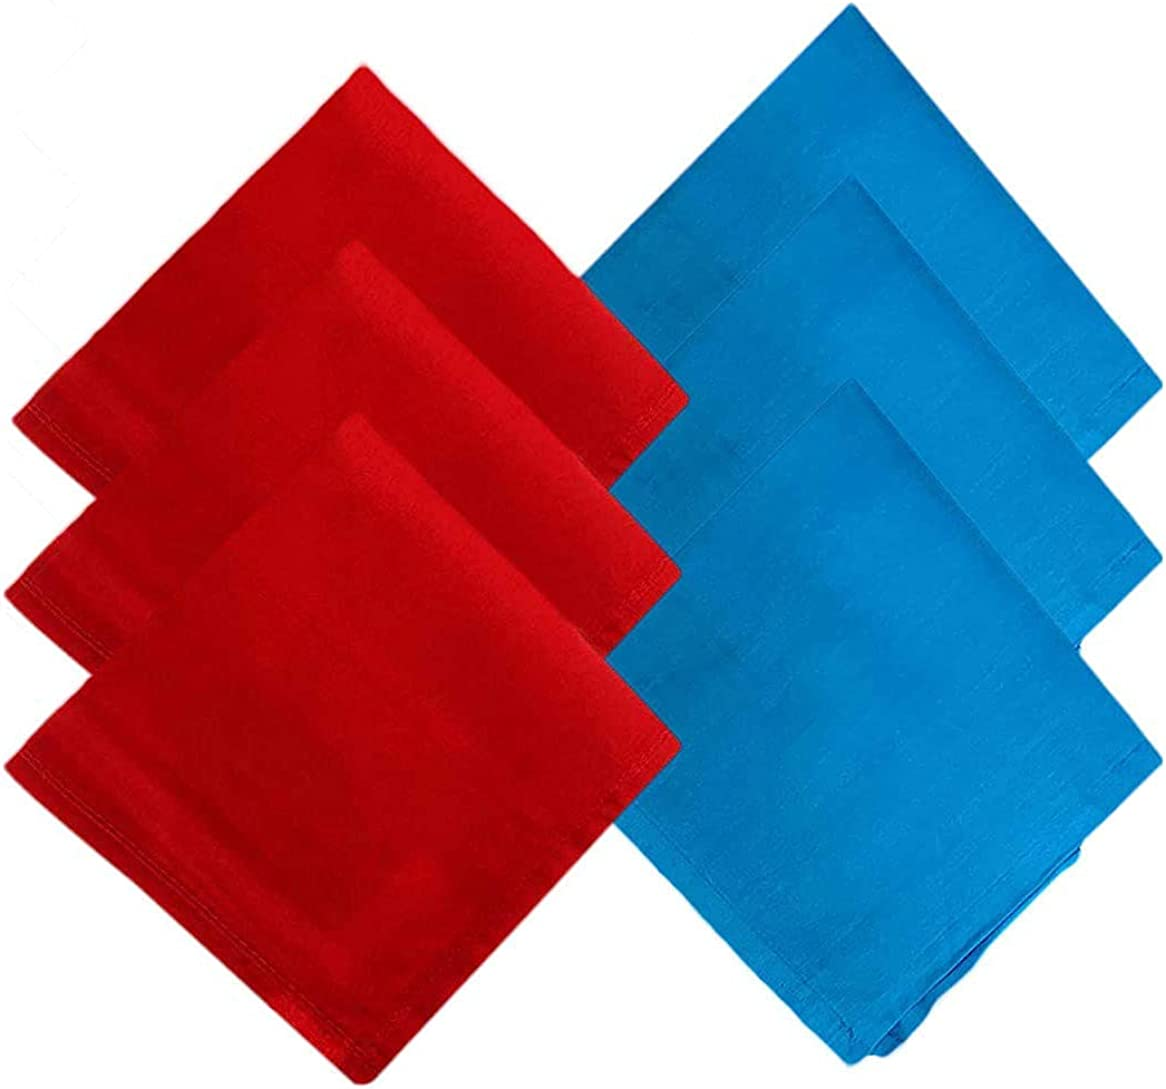 Kalagiri Cotton Premium Collection Red And Blue Handkerchiefs Hanky Set For Men - Pack of 6 Pcs